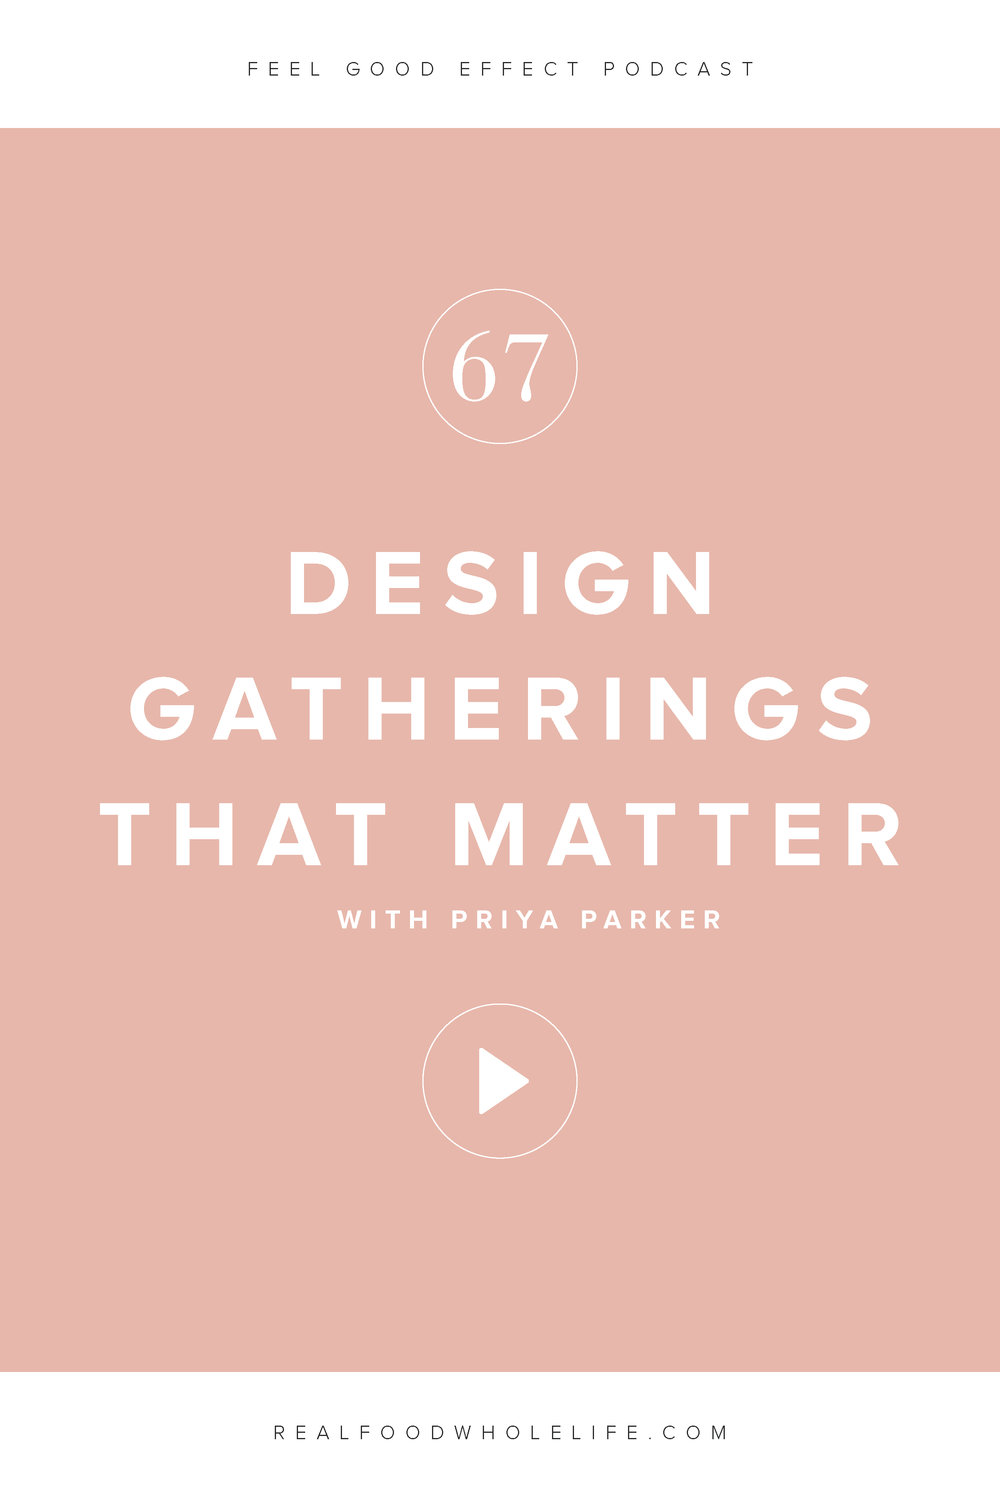 How to Design Gatherings that Matter, a conversation with Priya Parker on the Feel Good Effect Podcast. This episode is about how to infuse intention and connection into all of our gathering opportunities. #feelgoodeffect #podcastepisode #wellnesspodcast #priyaparker #spiralsupper #wellness #selfcare